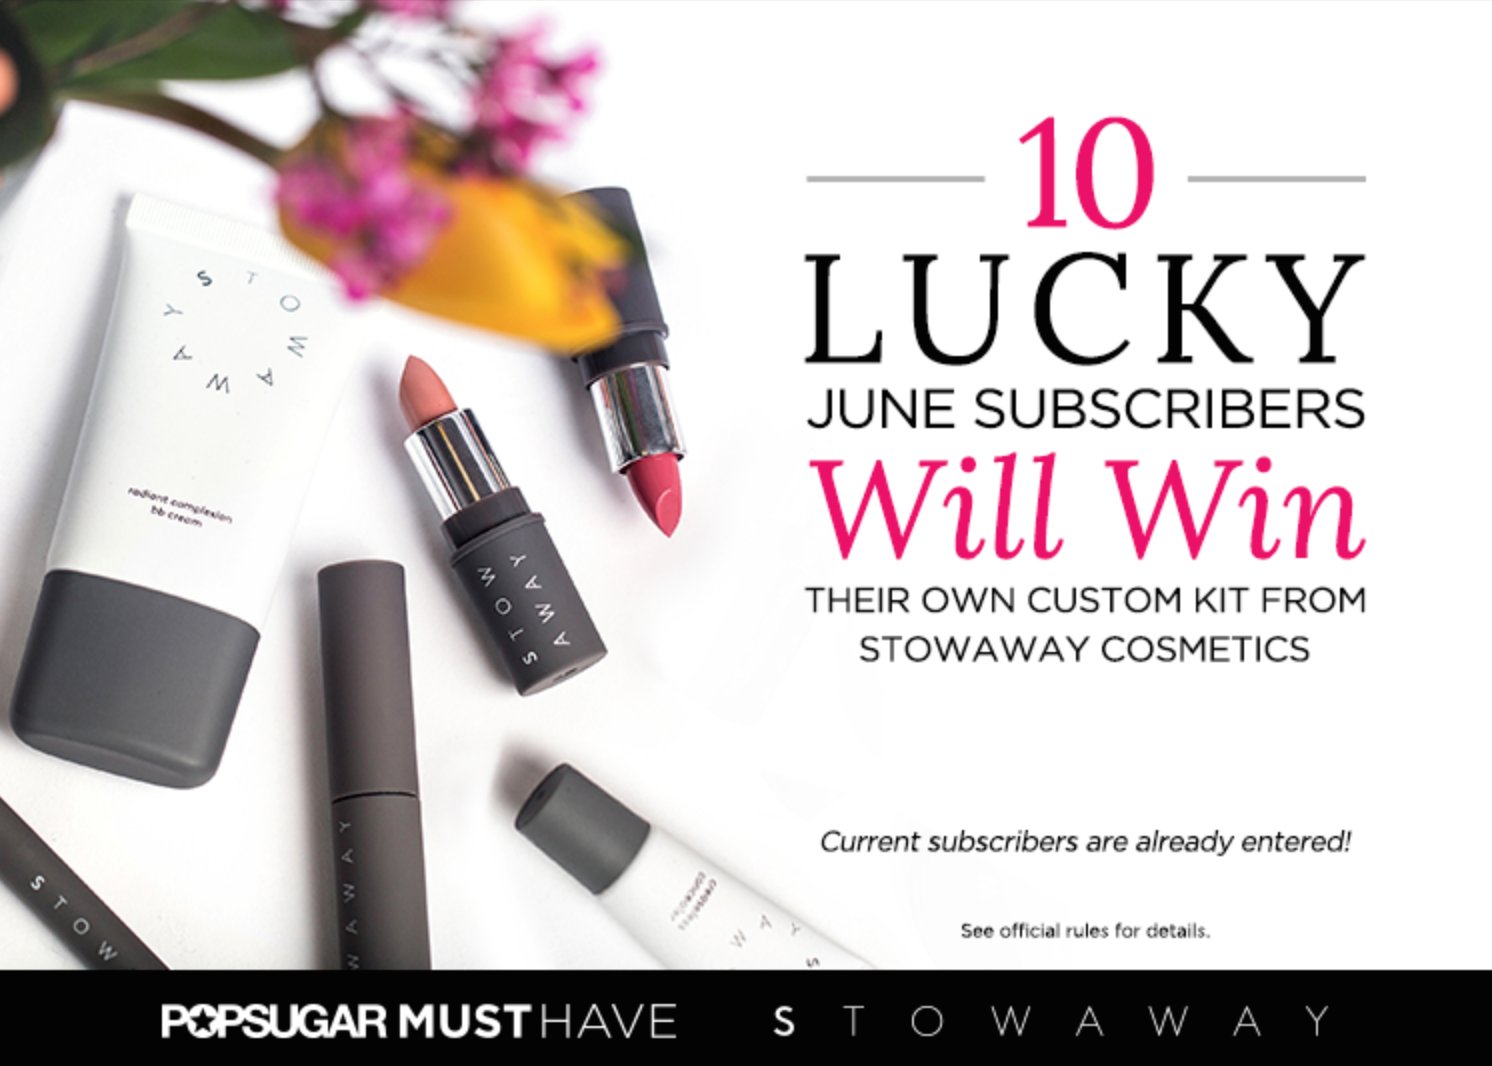 Popsugar Free Stowaway Cosmetics Kit for 10 Lucky June Subscribers!